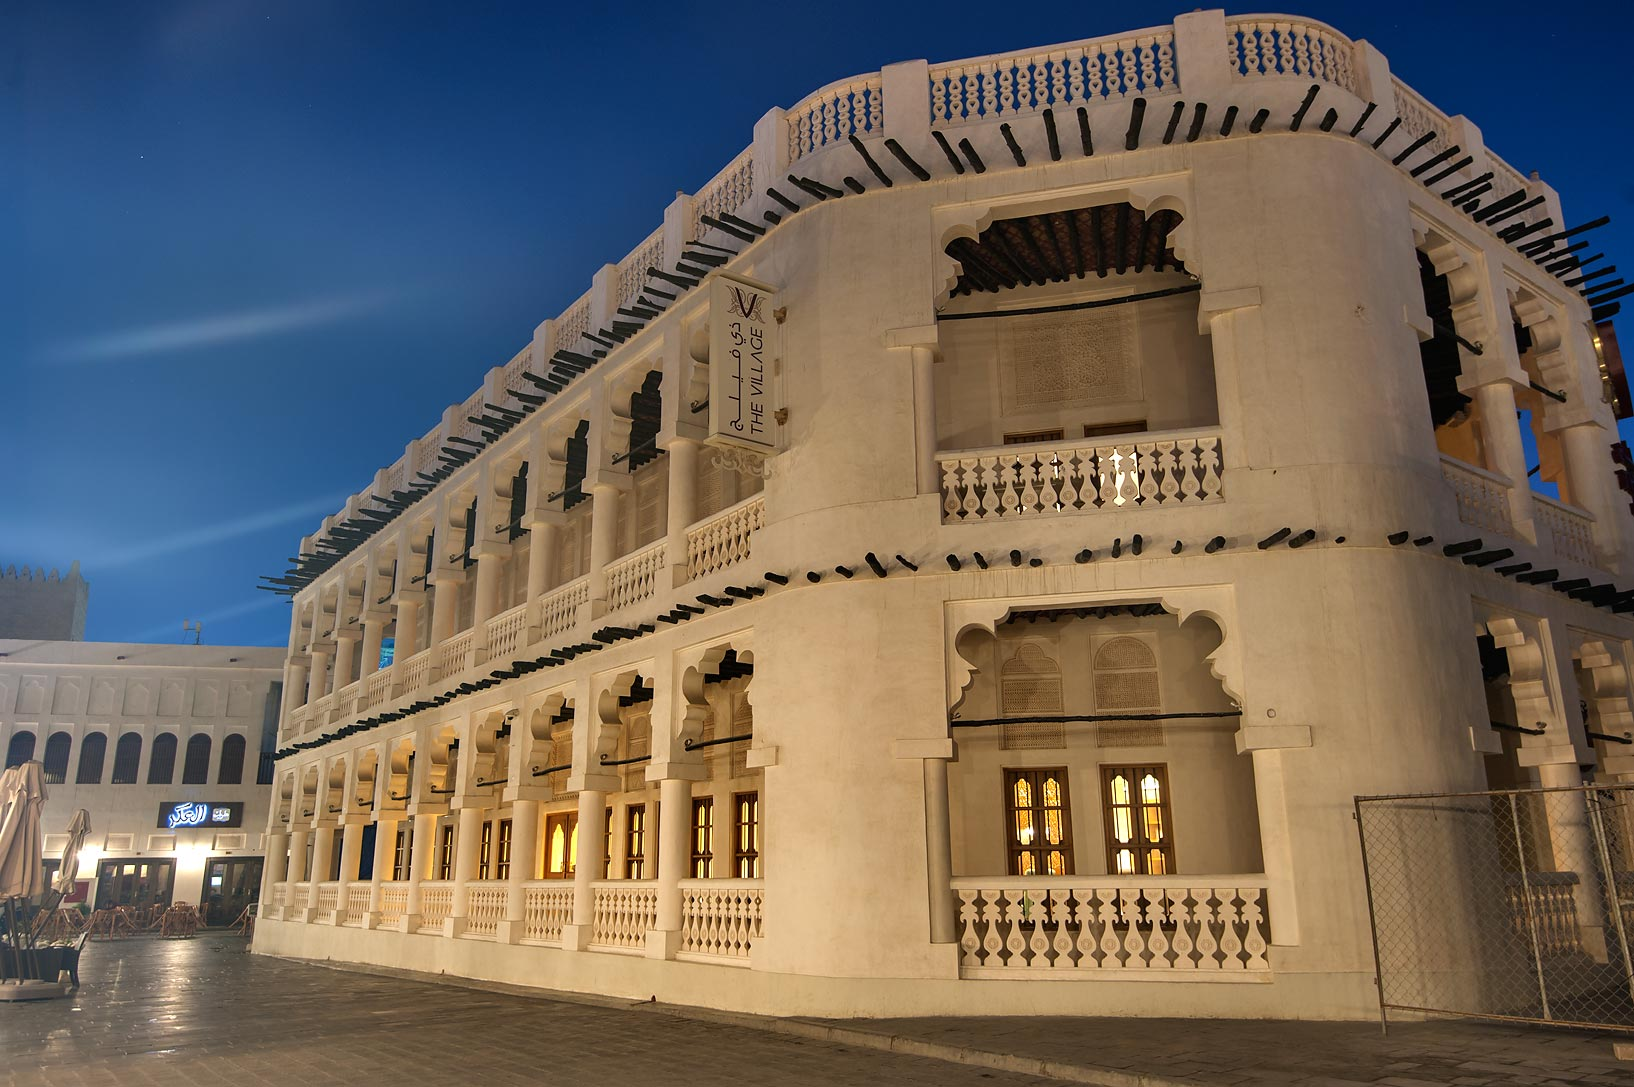 The Village Hotel in Souq Waqif (old market). Doha, Qatar